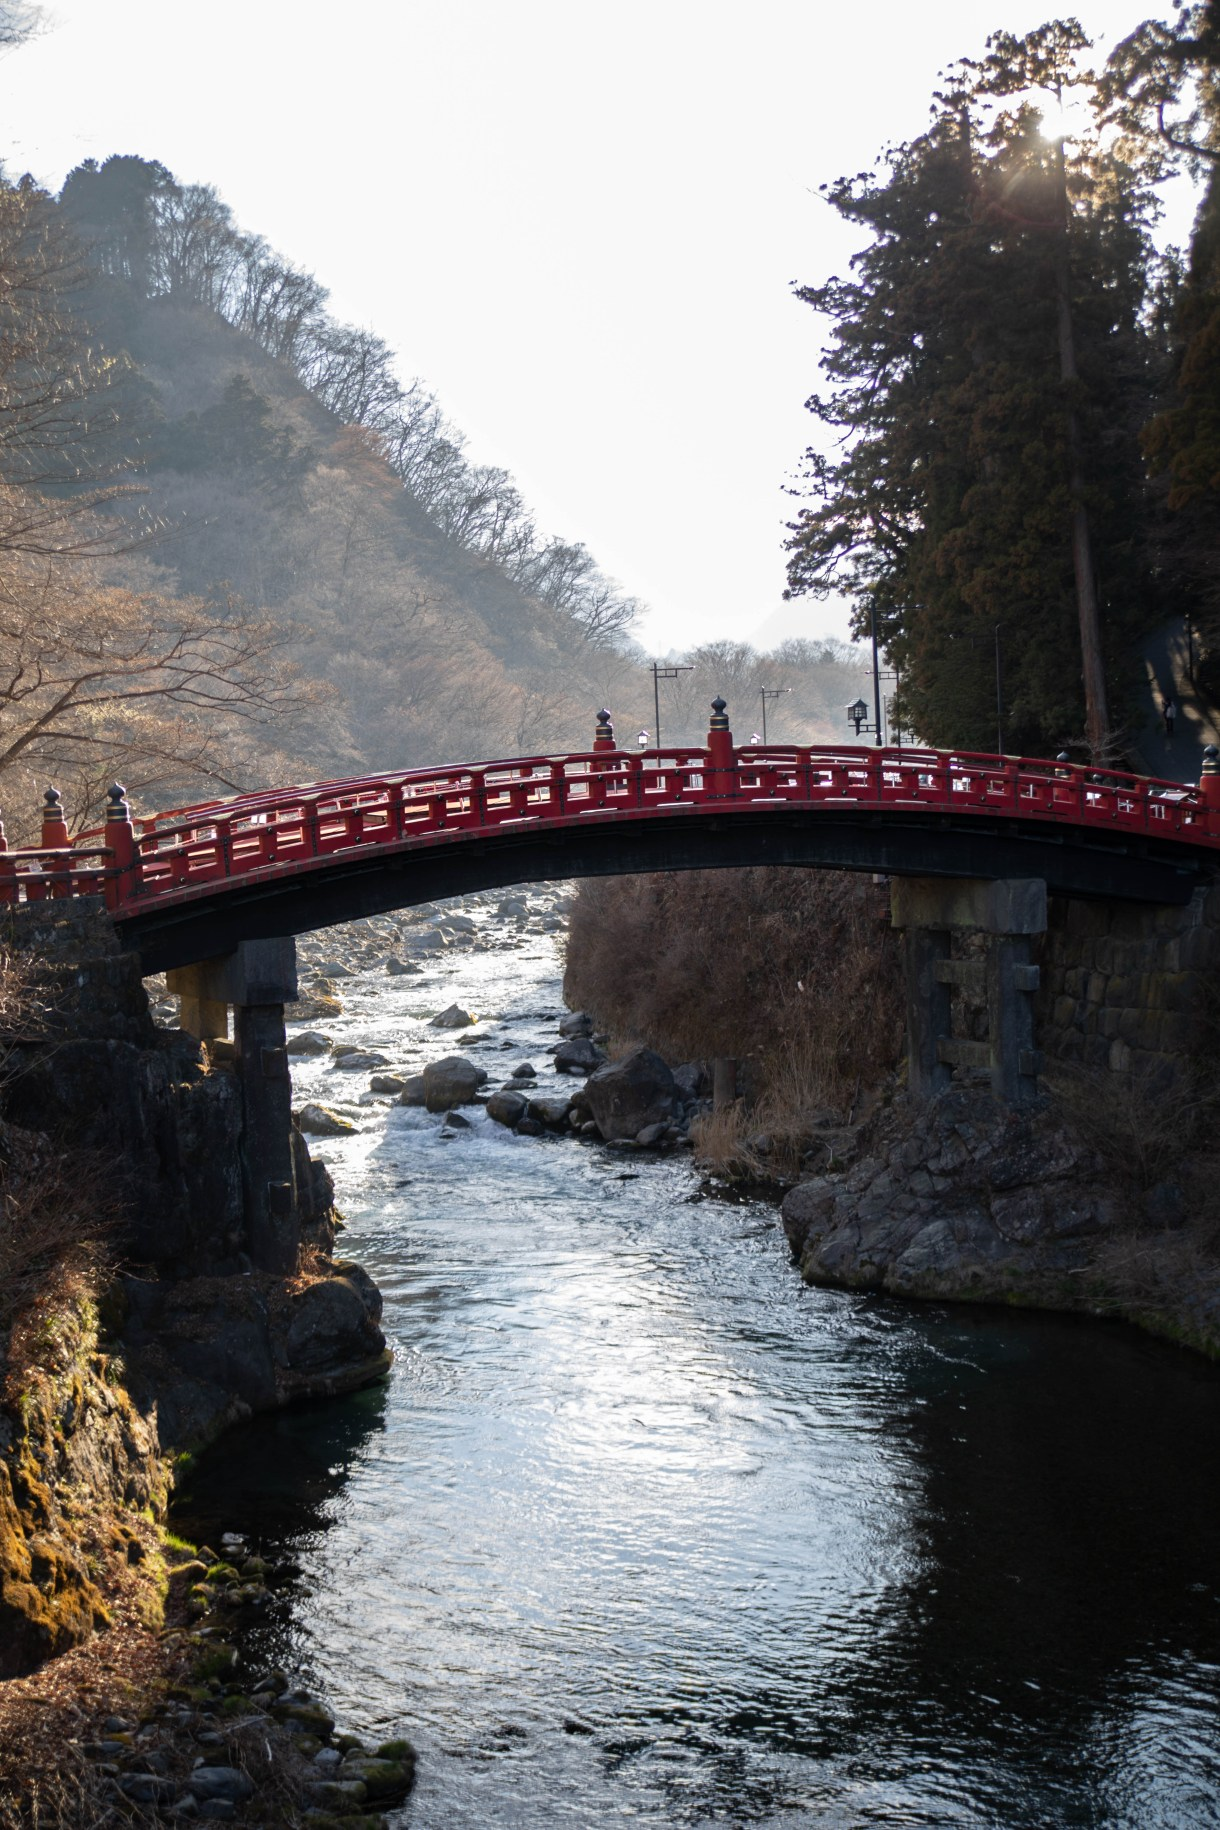 Red Shinkyo Bridge in Nikko, Japan, the Ultimate Travel Guide Written, Researched, and Photographed by Travel Writer & Photographer Annie Fairfax